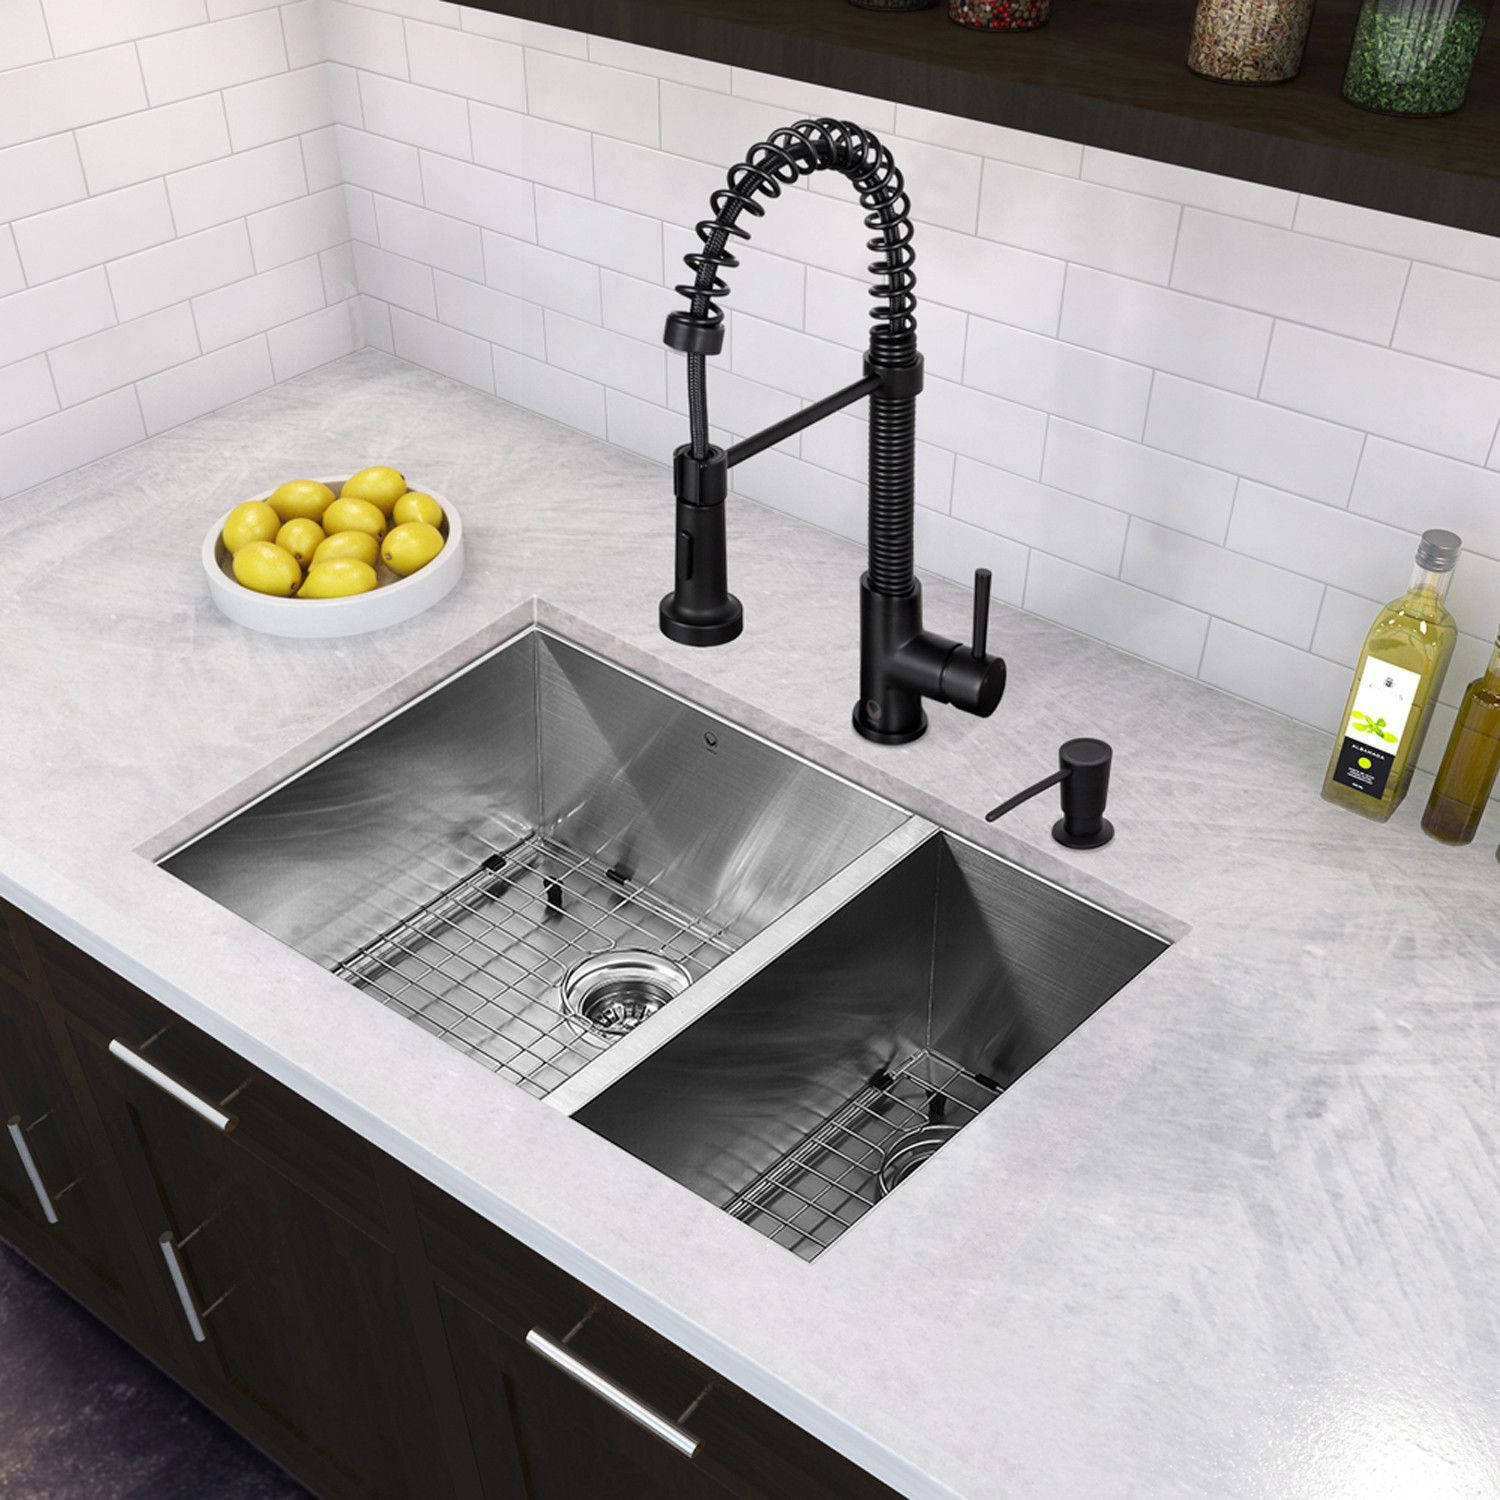 All In One 29 Inch Stainless Steel Undermount Kitchen Sink And Edison Matte Bla Stainless Steel Kitchen Sink Undermount Kitchen Faucet Double Bowl Kitchen Sink